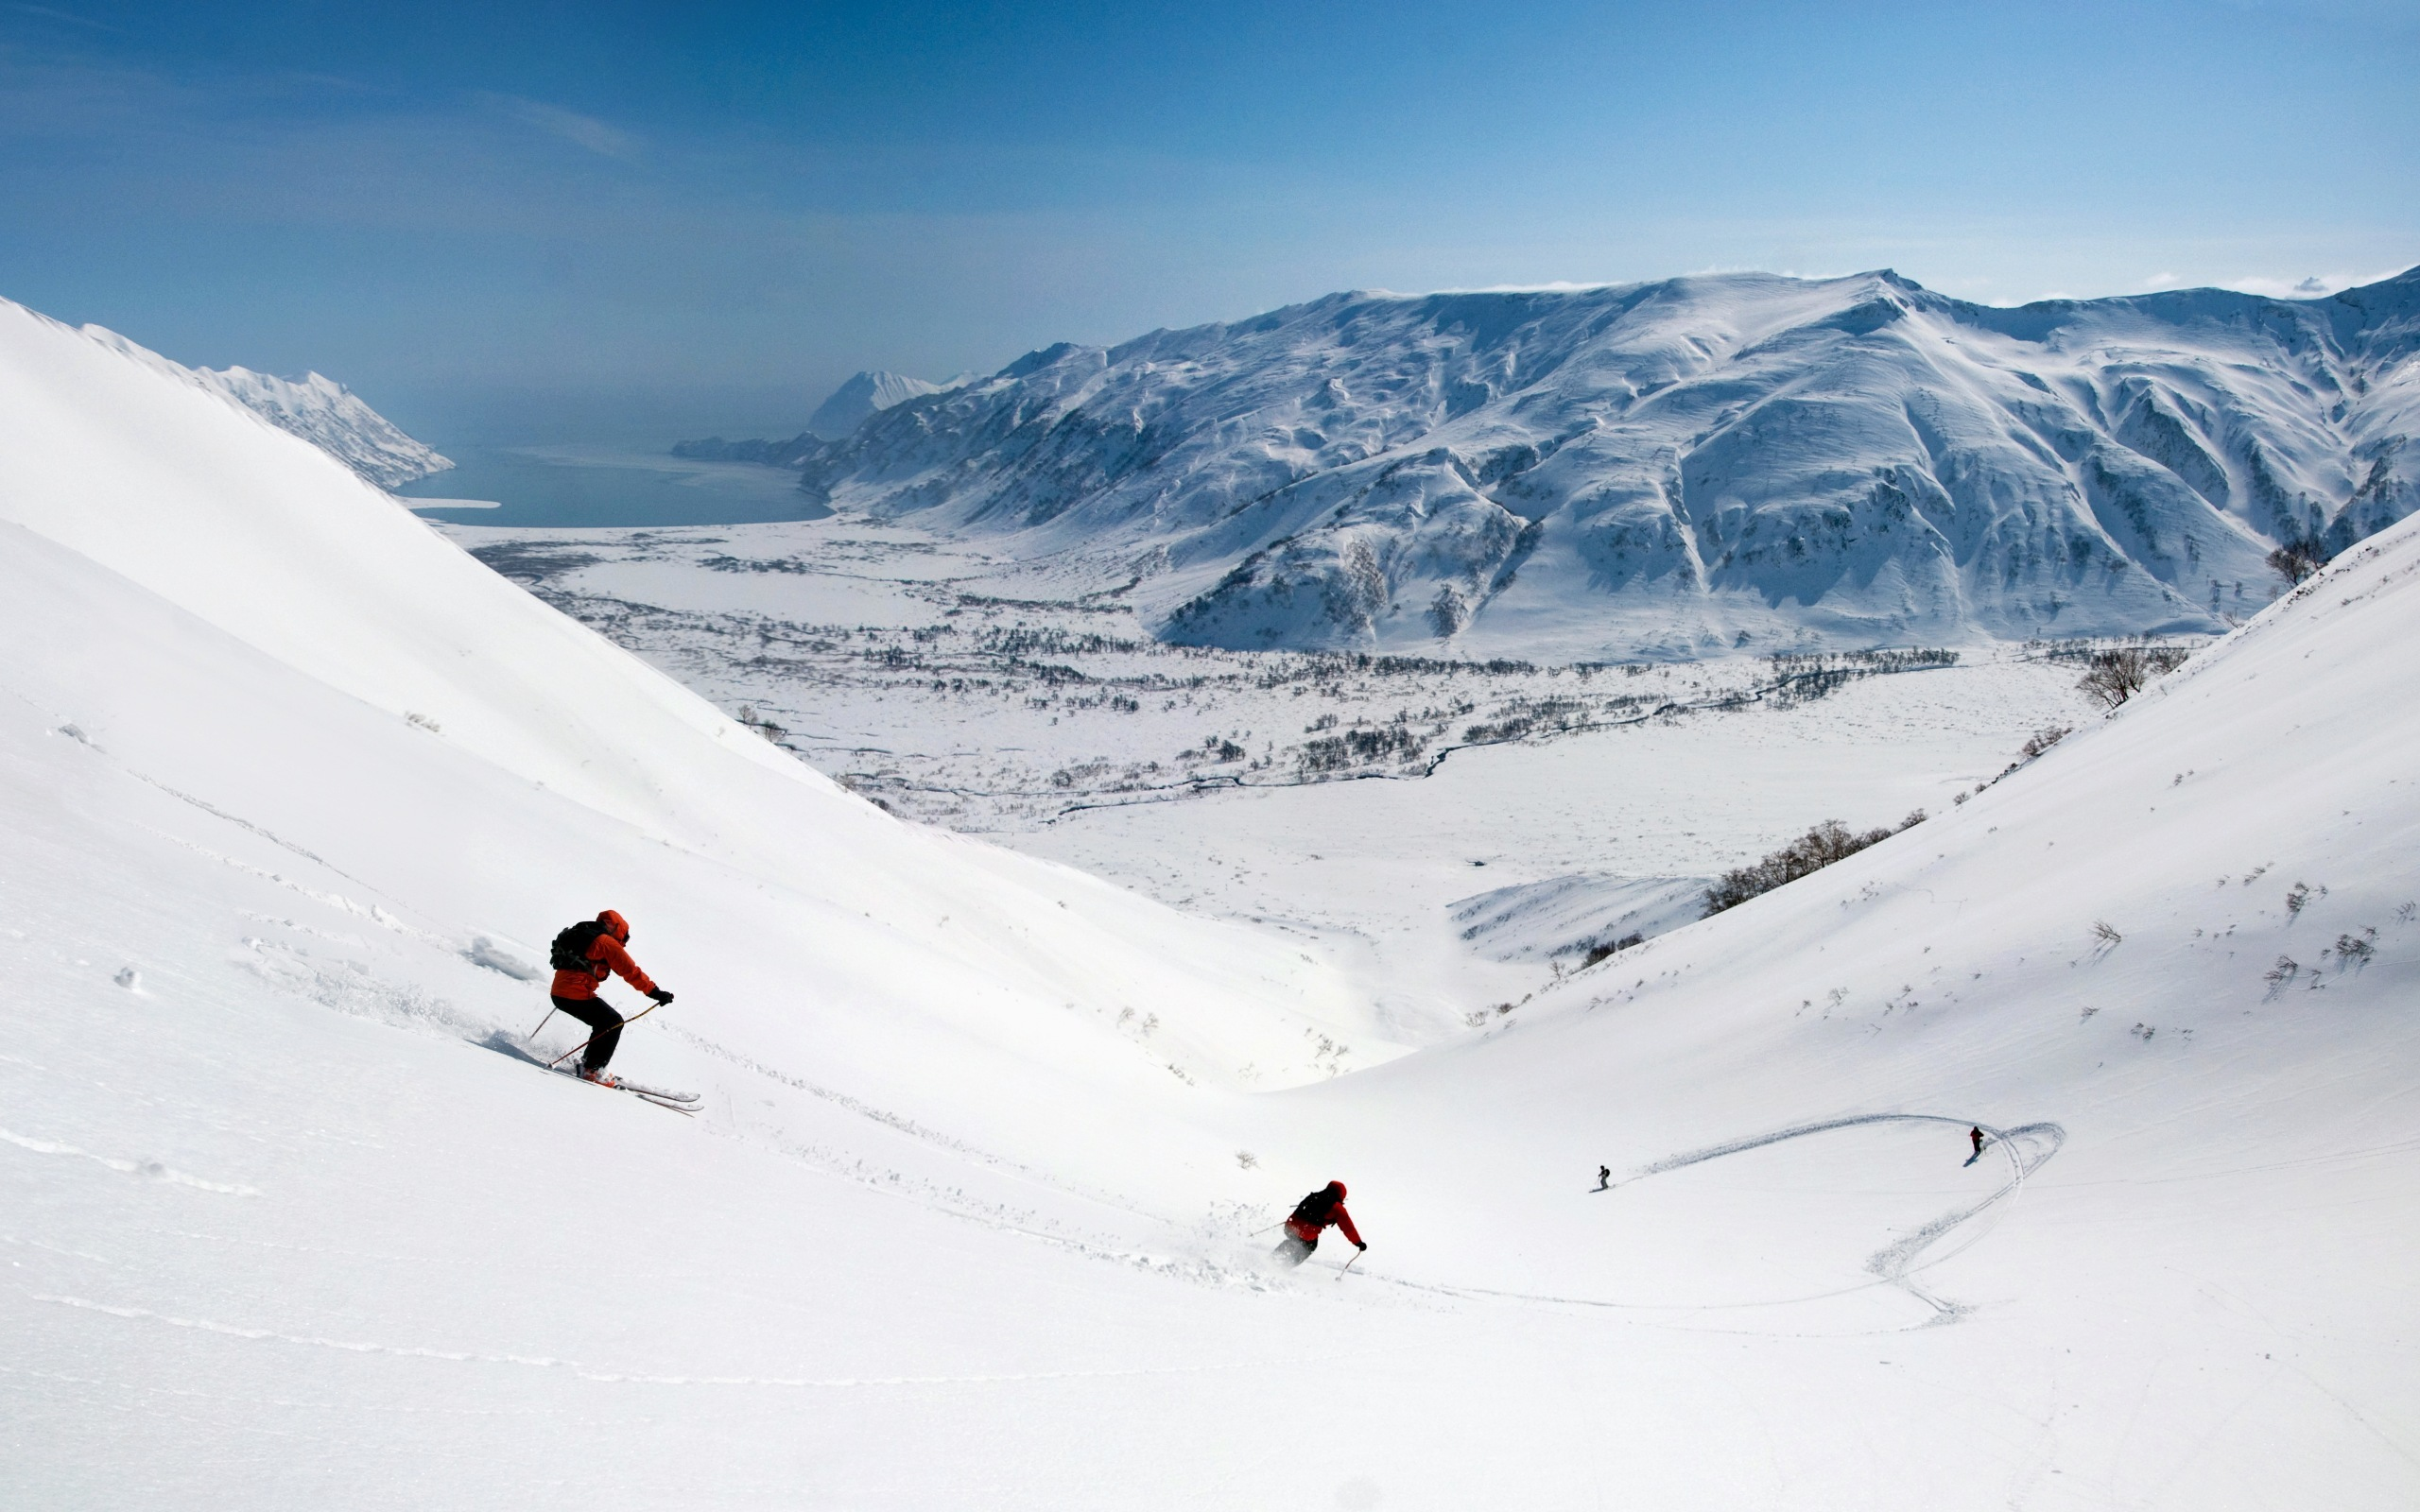 Skiing Wallpaper Skiing Hd Wallpaper Background Image 2560x1600 Id 230612